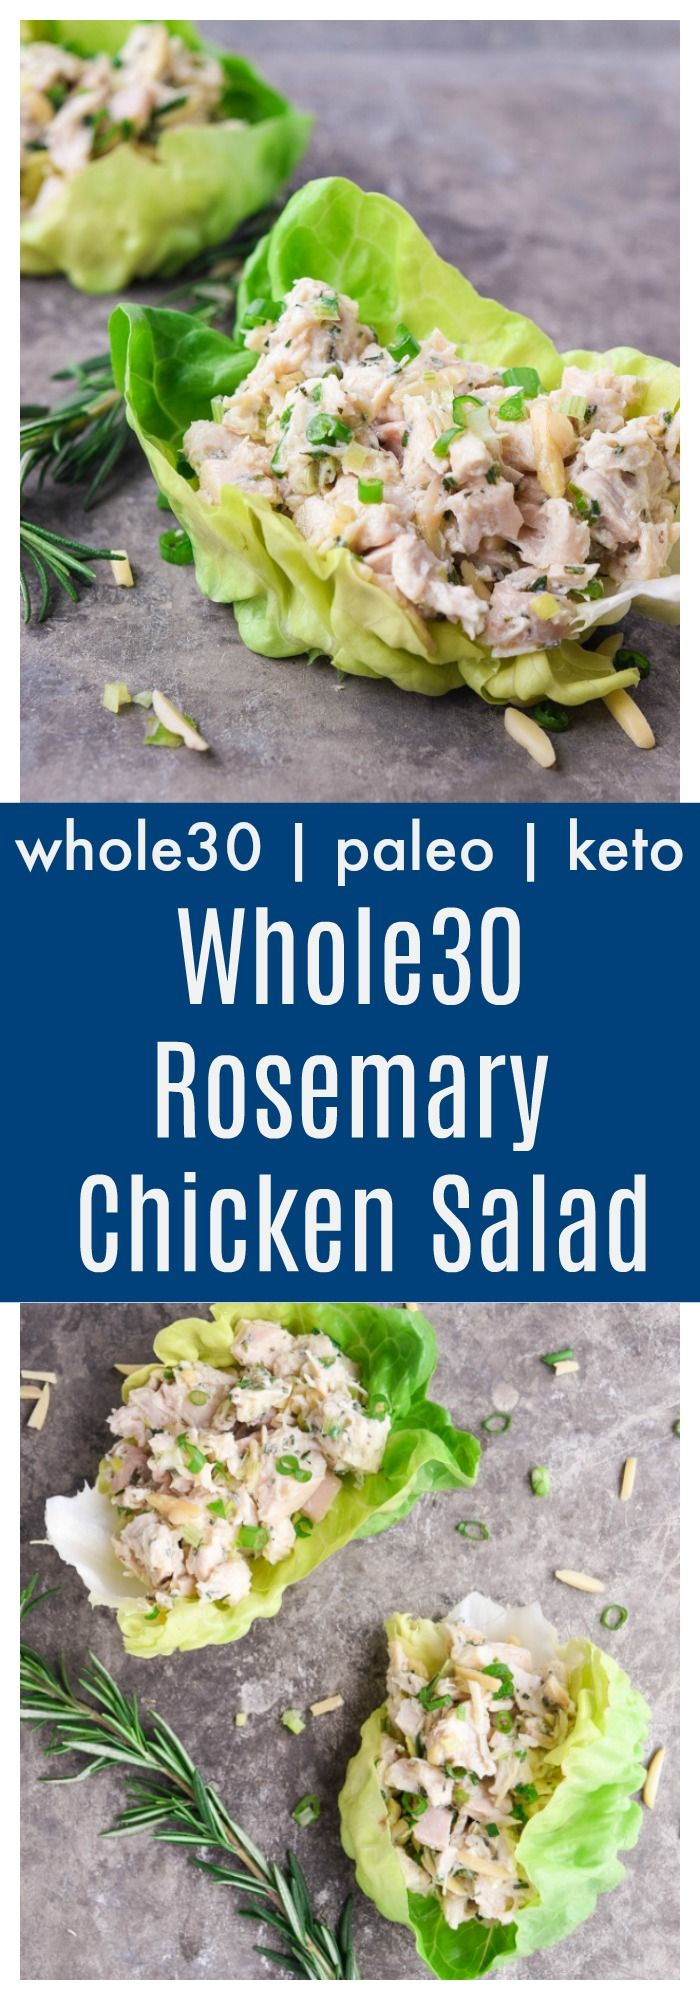 1105 best Food images on Pinterest | Drink, Cooking food and ...